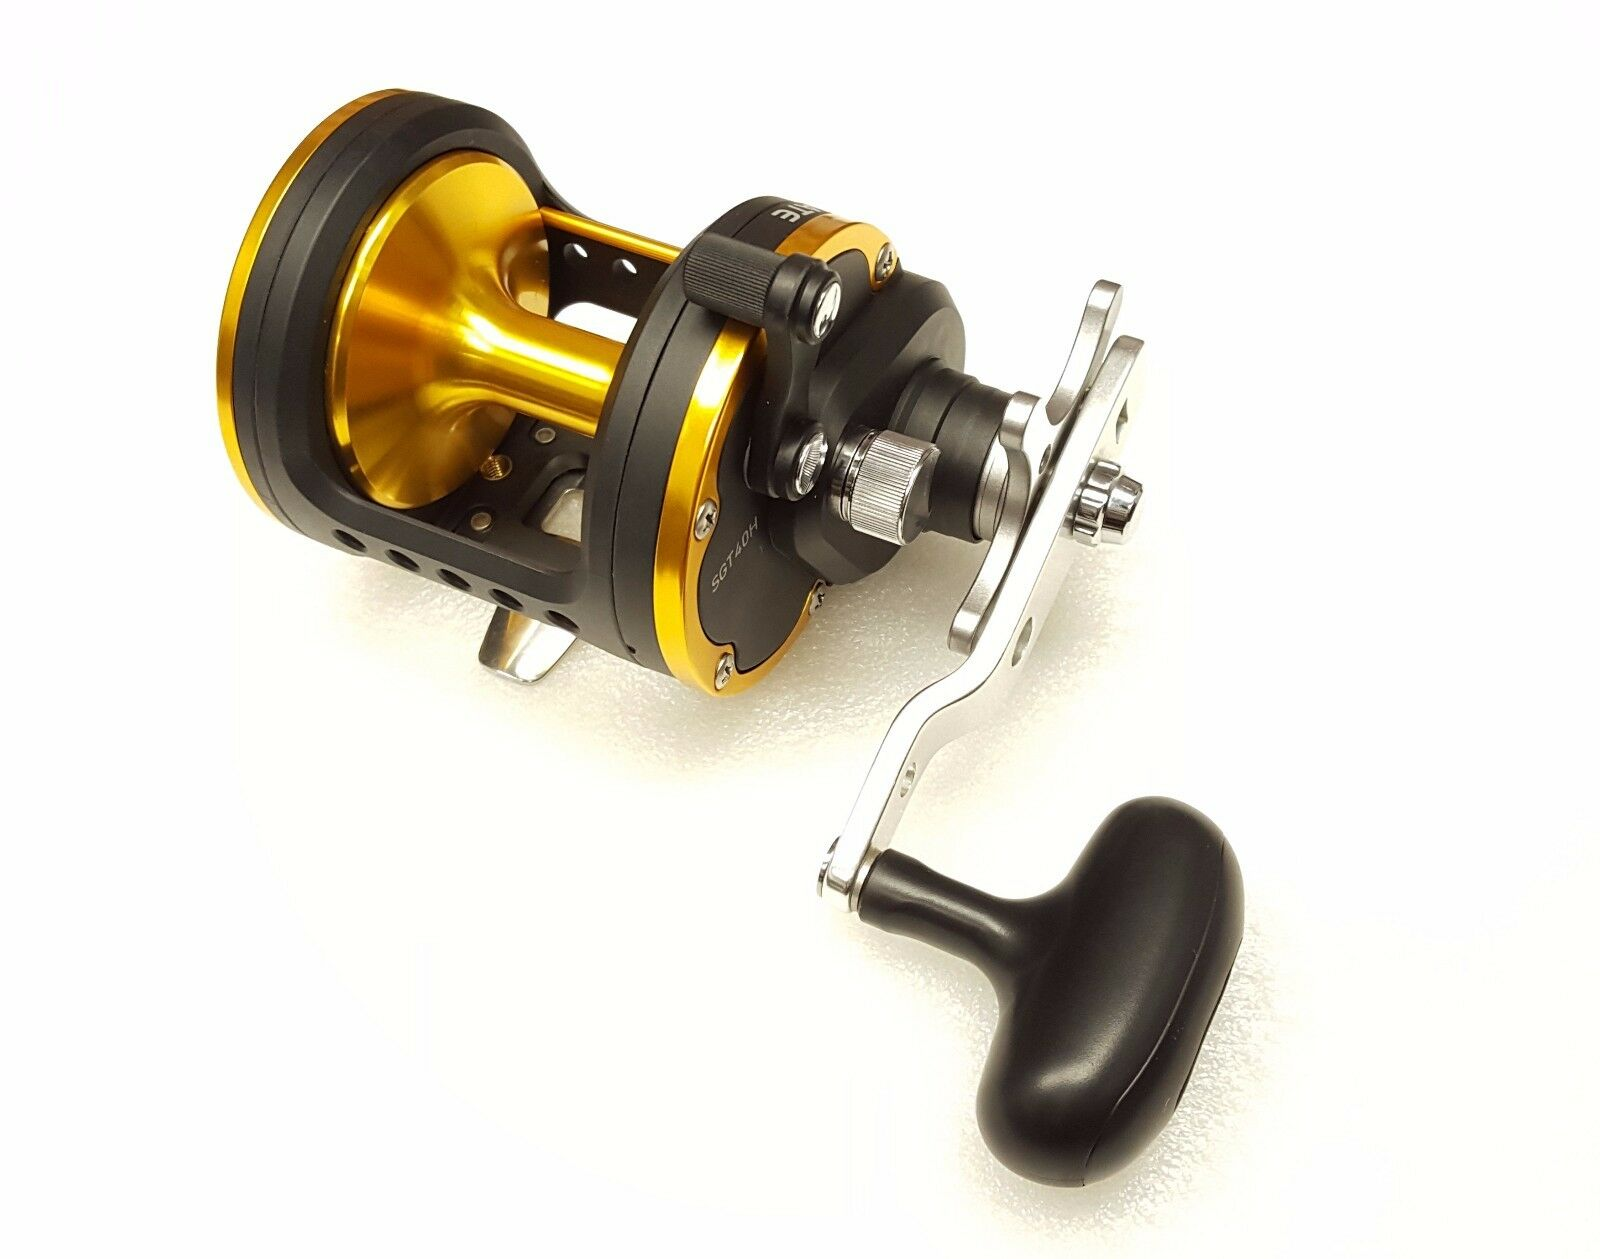 Daiwa Seagate Star Drag Conventional 6.4:1 Right Hand Fishing Reel 40H 40H Reel - SGT40H d41267